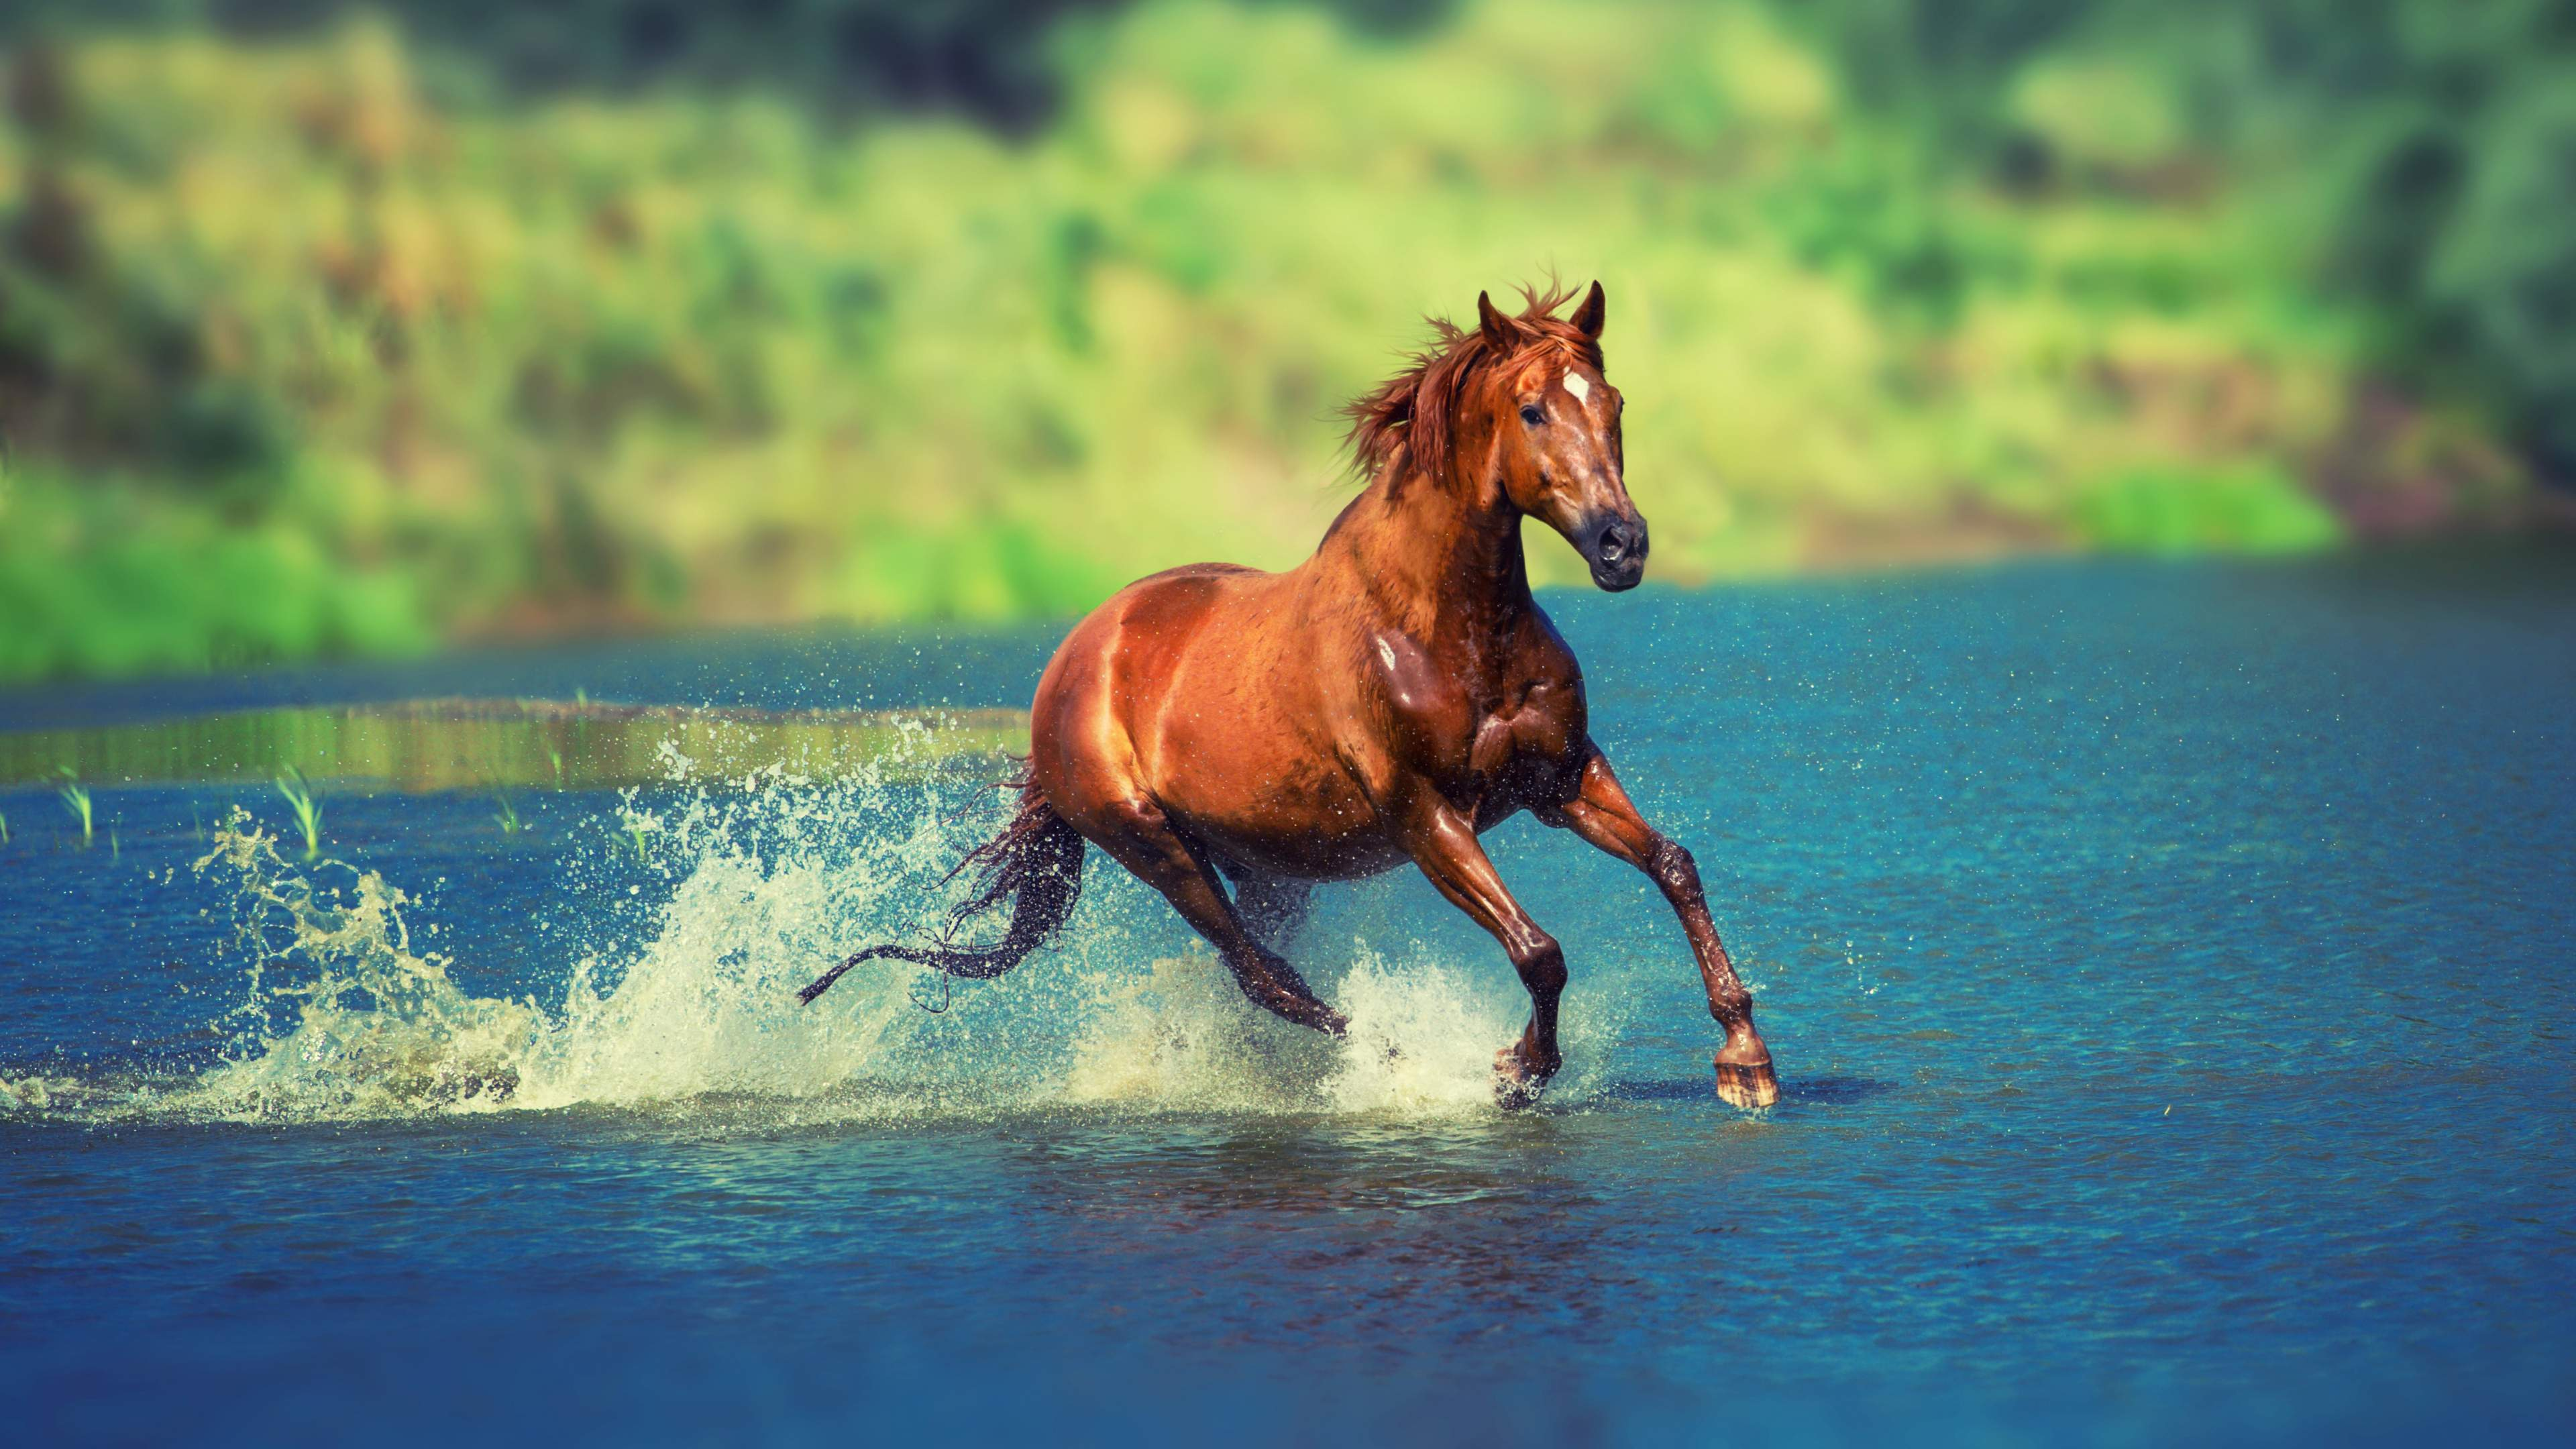 Wild Horse Running 4K Wallpaper For Desktop 3840x2160 3840x2160